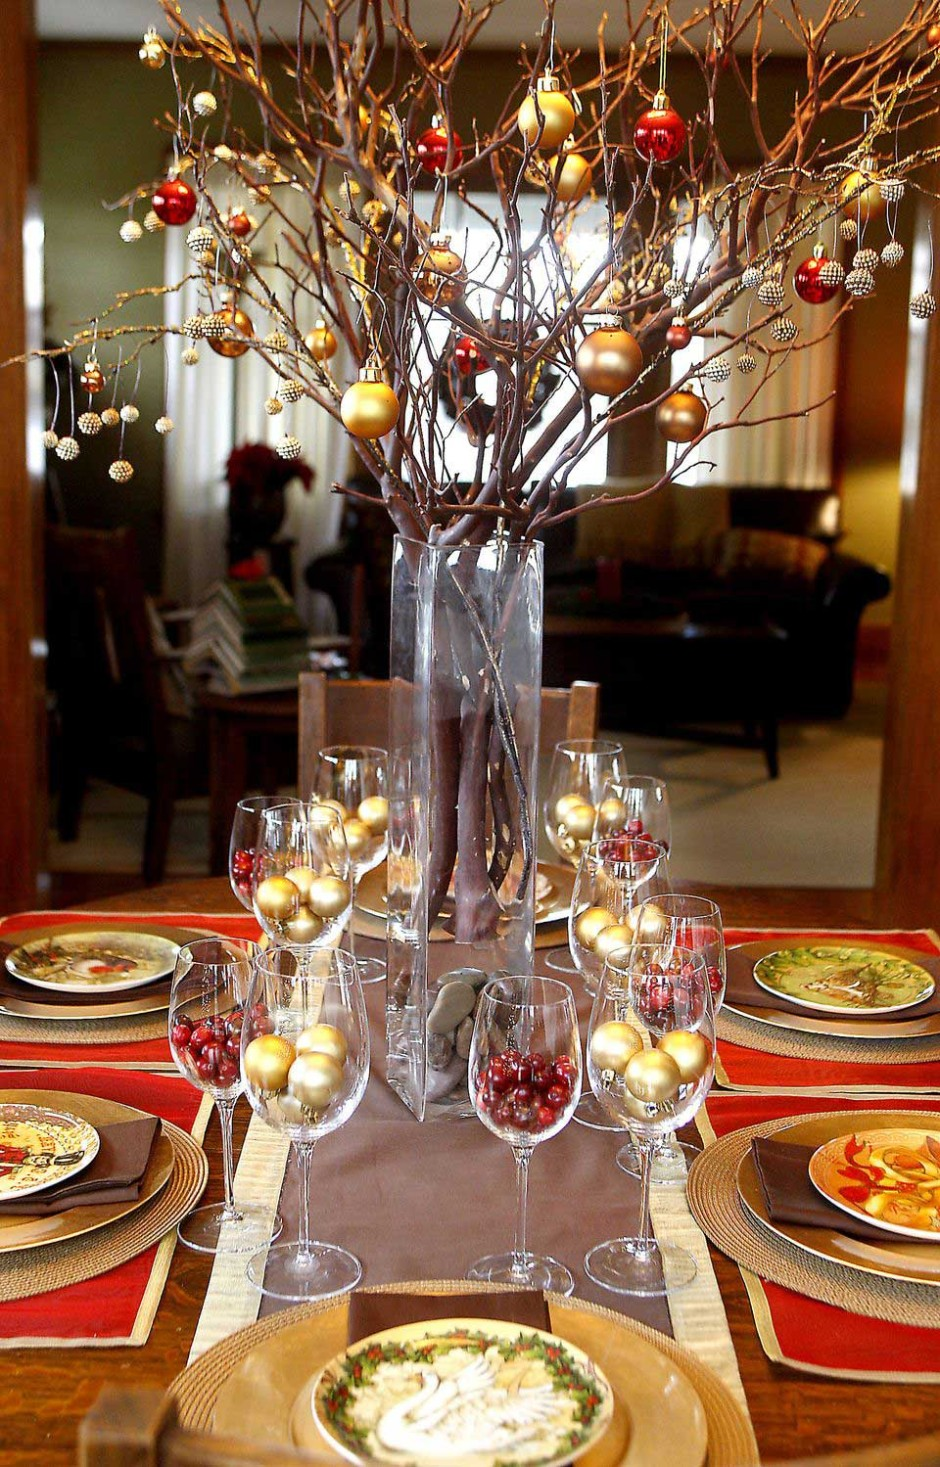 table decoration good ture rectangular red accent dining contemporary christmas party using round glass really tall vases including tree branch gold and baubles centerpiece